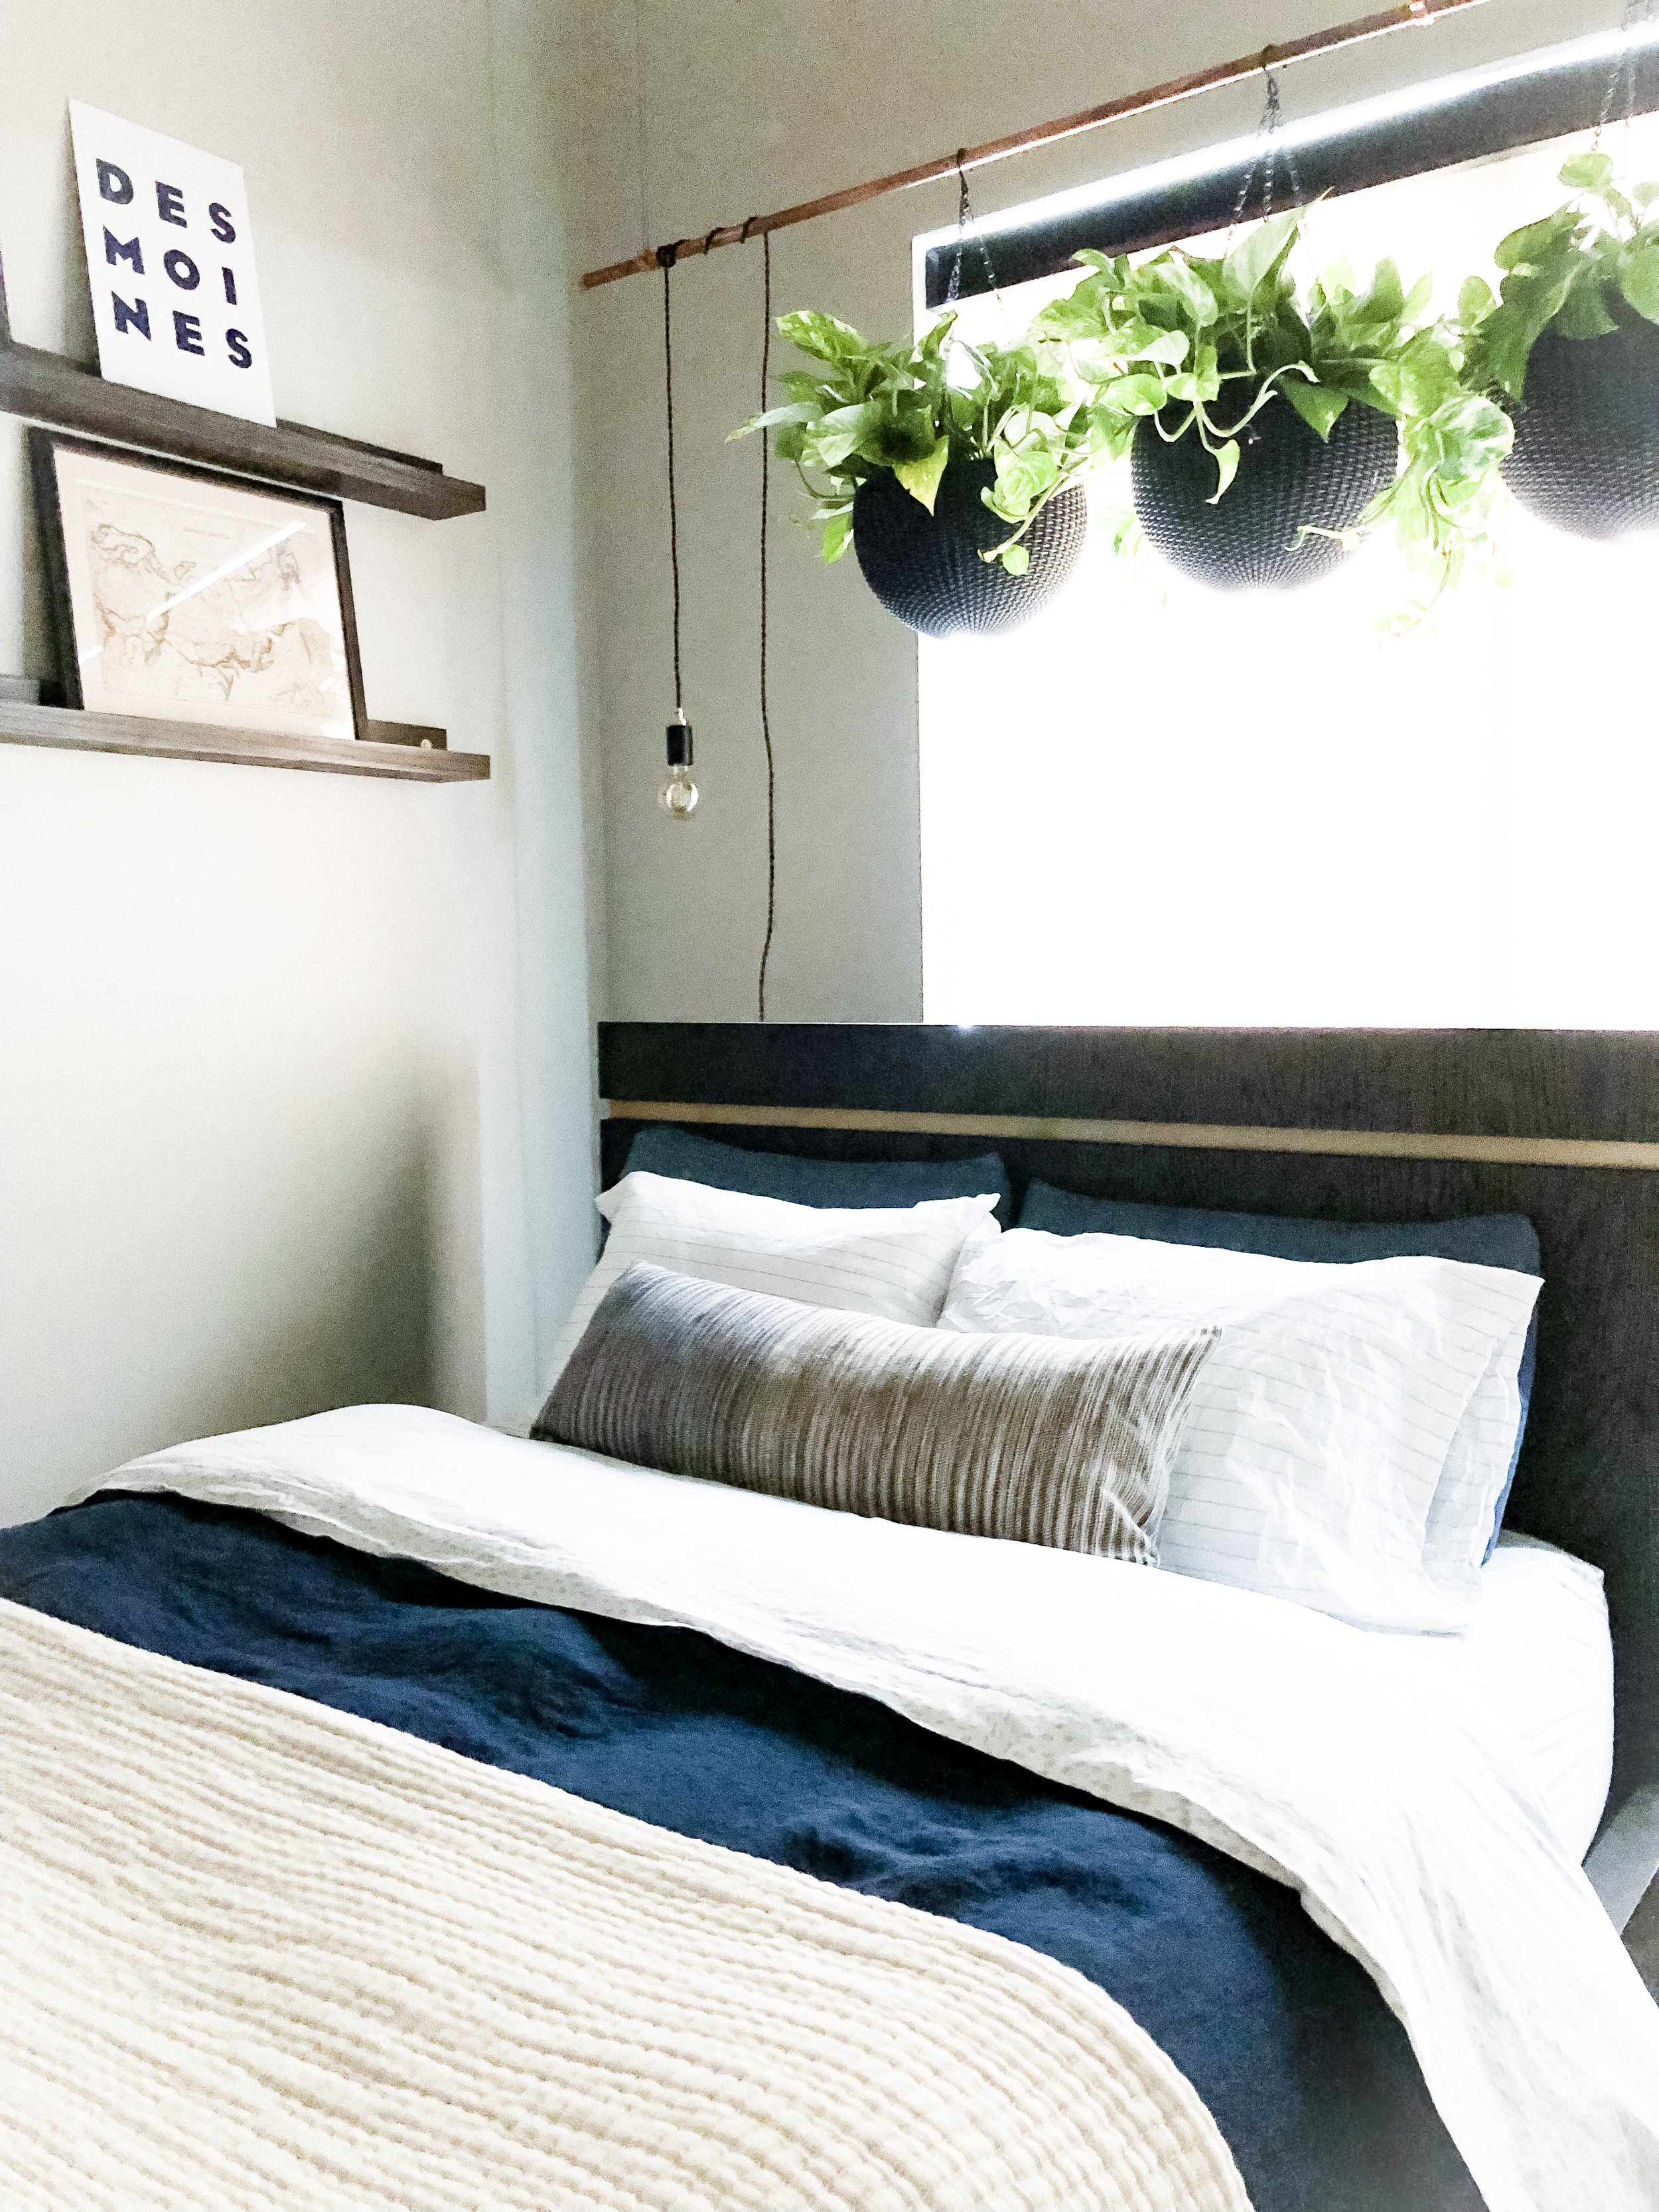 I can't get enough of this client bedroom I worked on in downtown Des Moines. It's a small space, but was seriously lacking in style. The West Elm bedding, floating shelves, and hanging plants breathed so much life into the room!